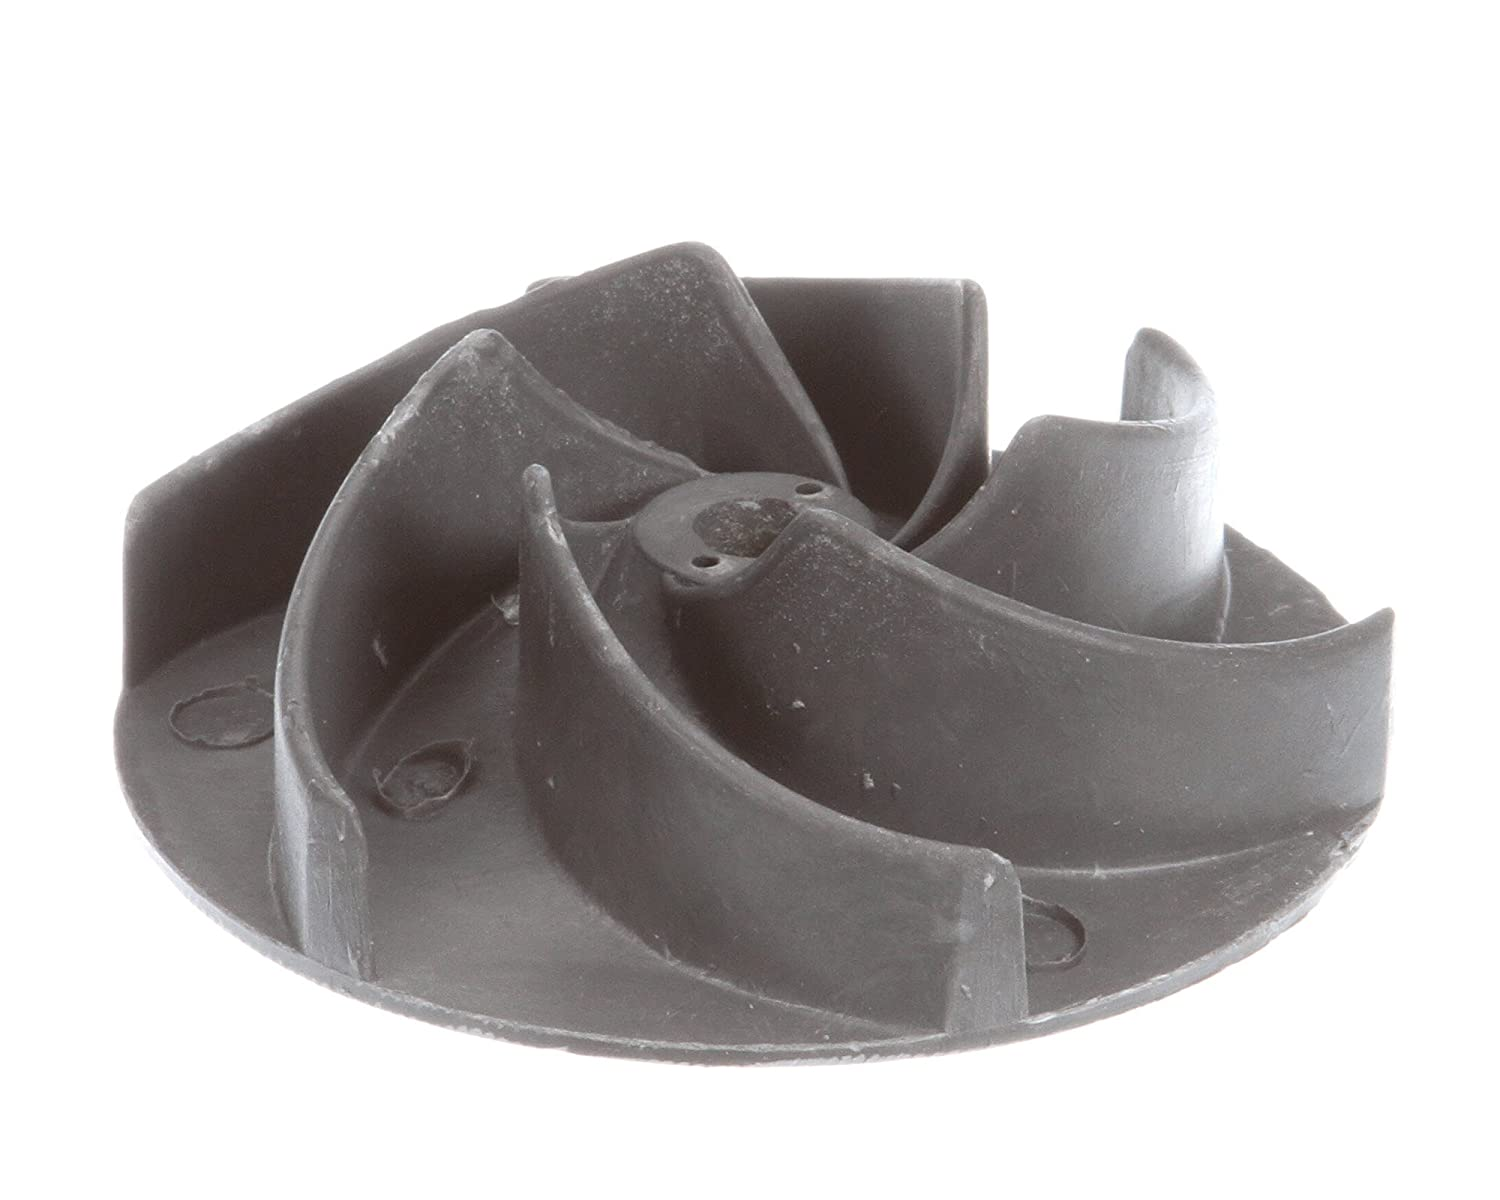 "Champion - Moyer Diebel 114141 Impeller Fir Pump Part, 9"" Height, 6"" Width, 5"" Length 71We4KRbhBL"